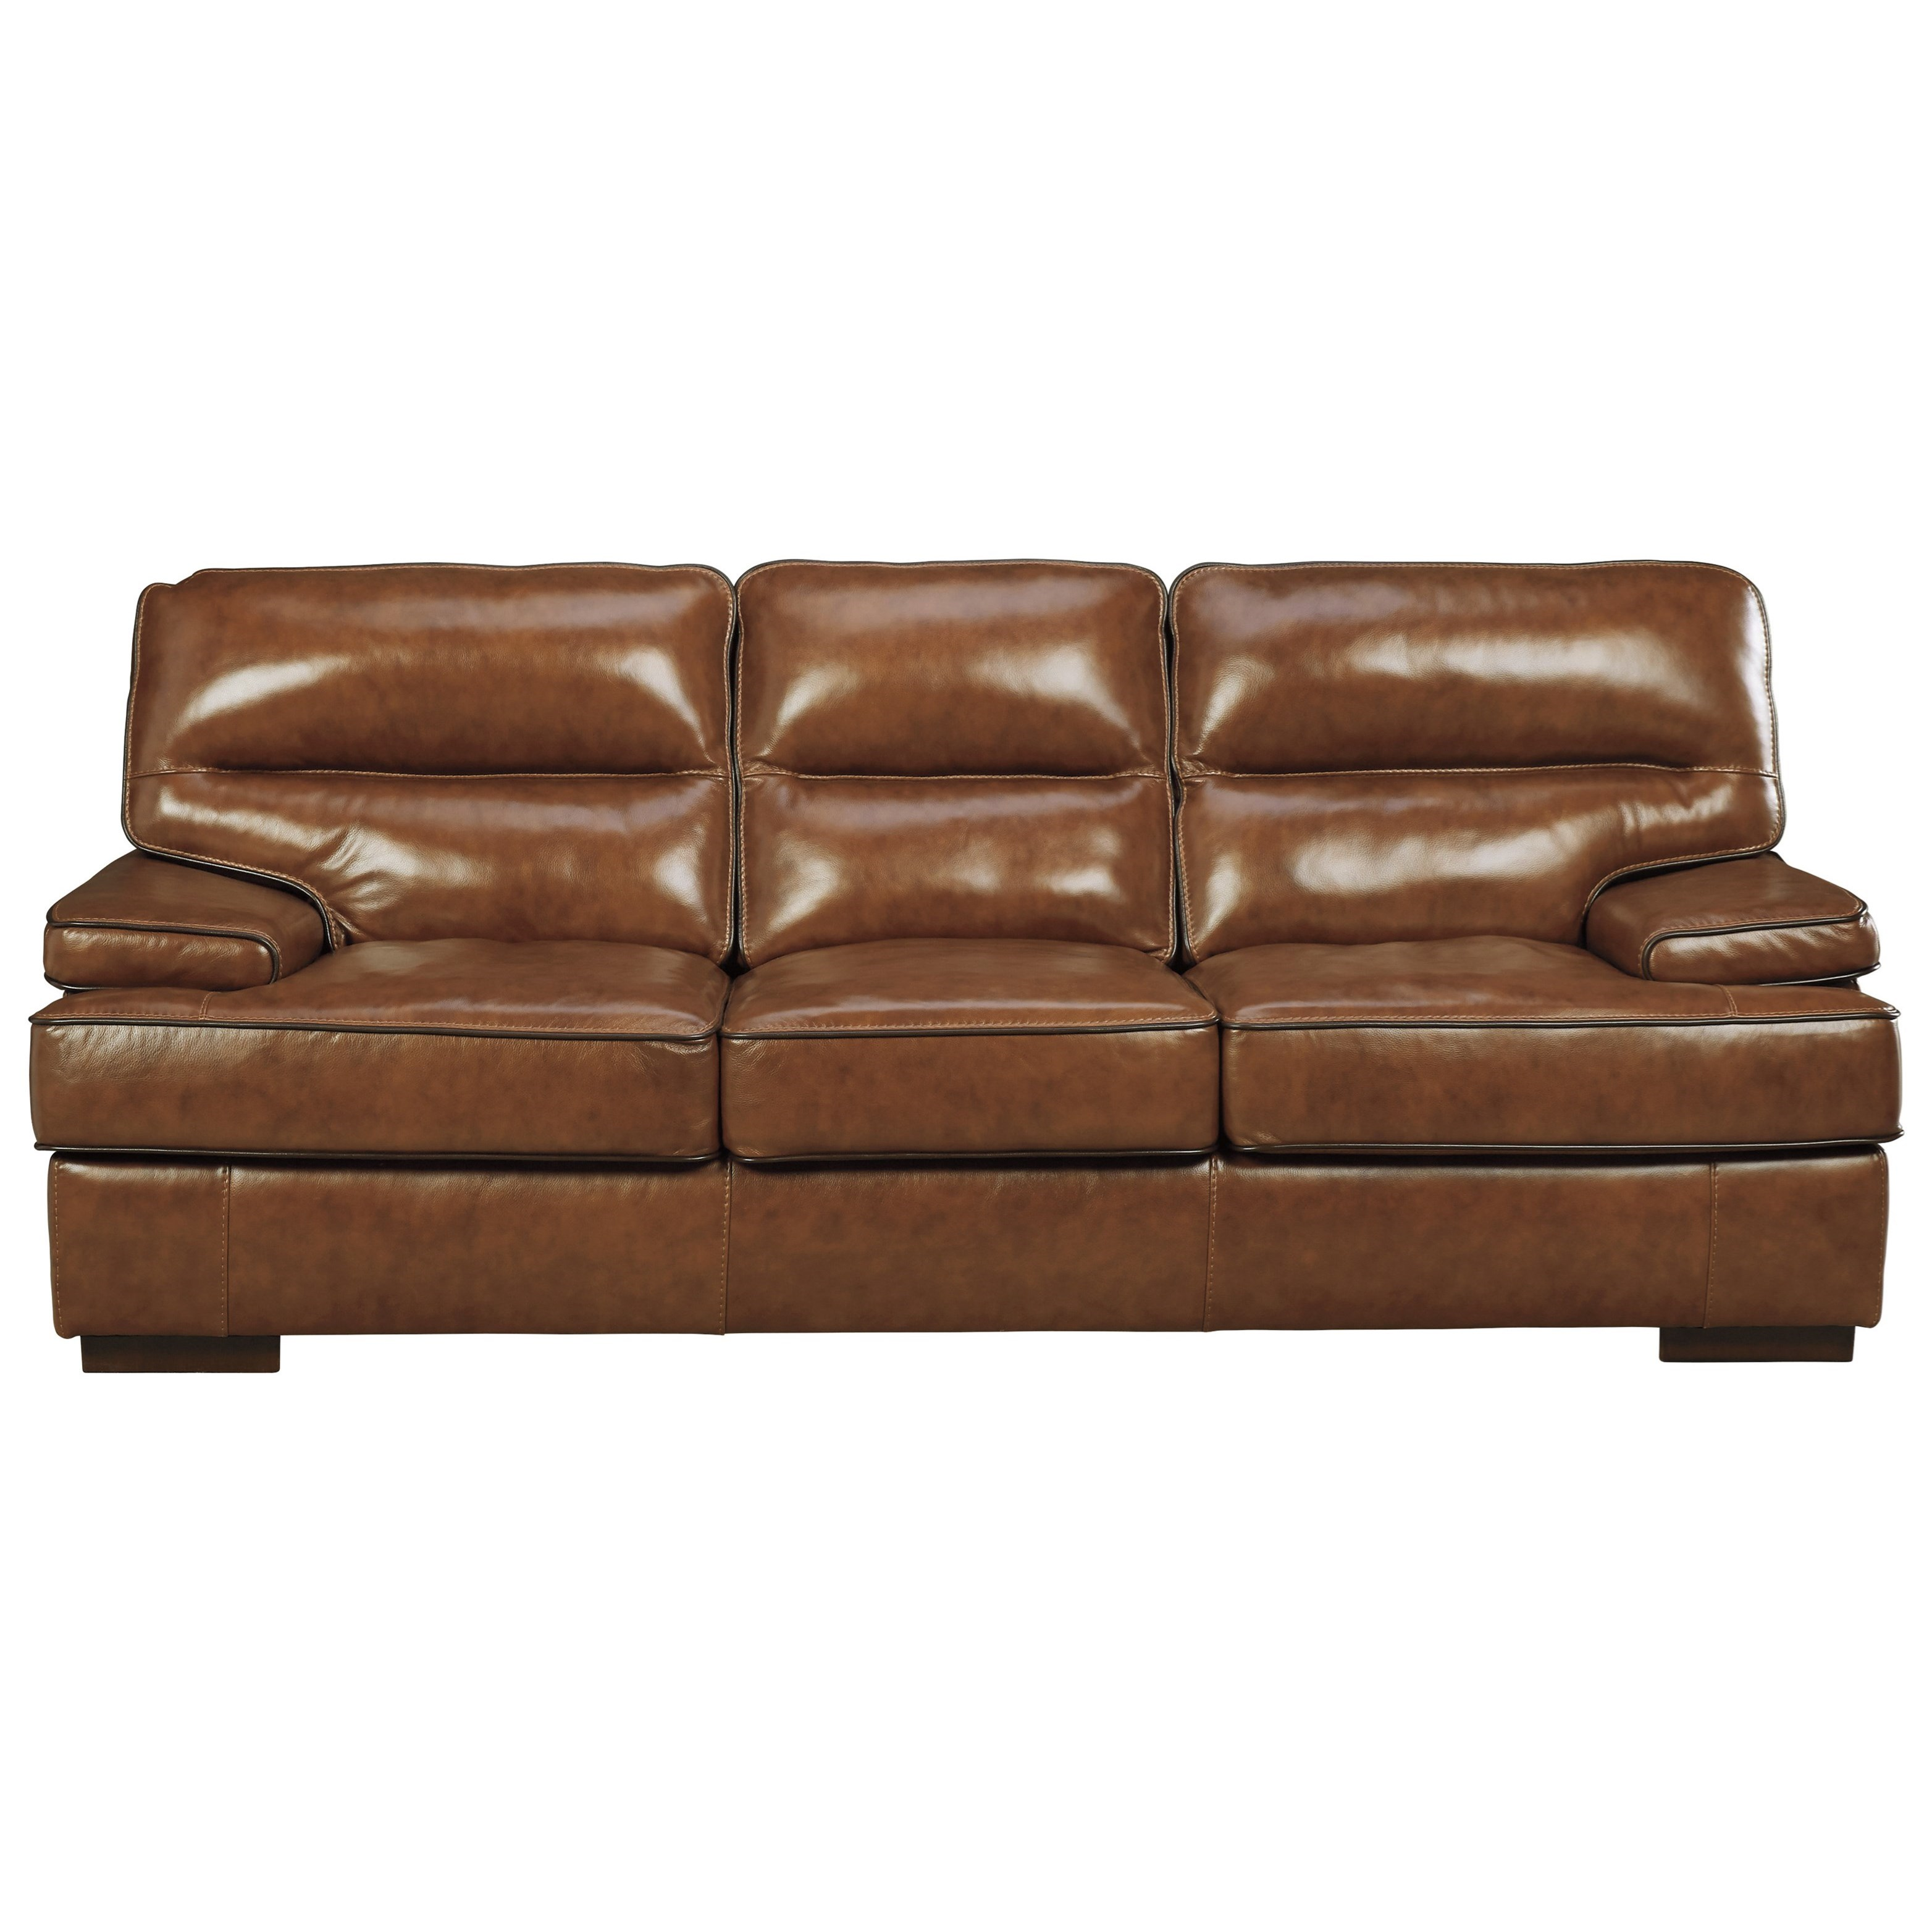 Signature Design By Ashley Palner 7850138 Contemporary Leather Match Sofa Furniture And